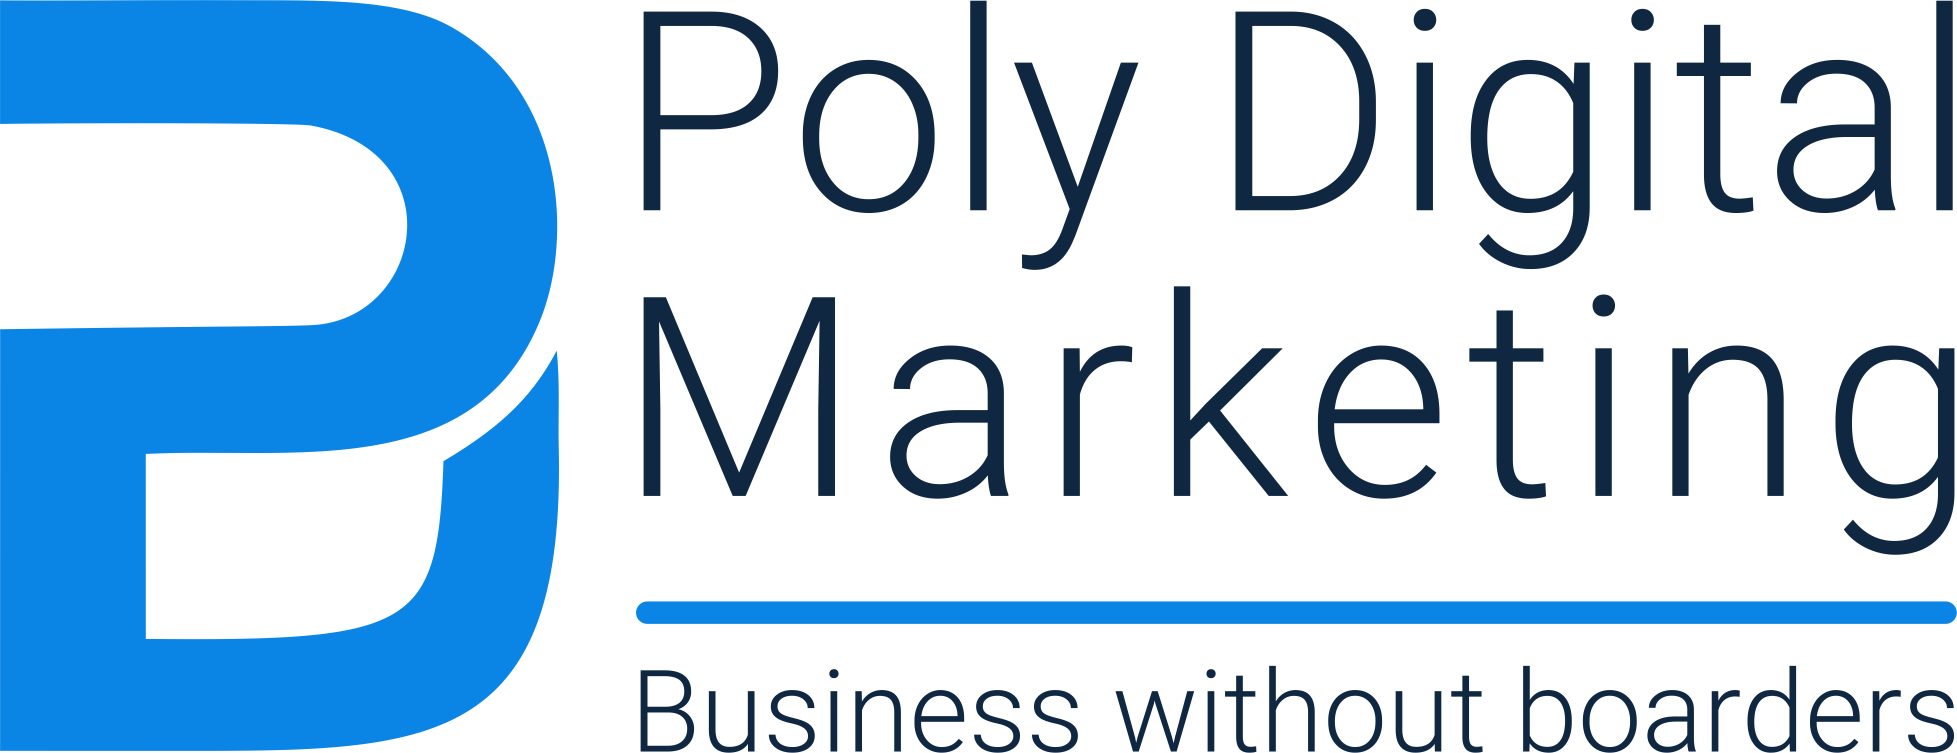 Poly Digital Marketing - multilingual marketing agency for tourism and hospitality industry. Promote your destination internationally in different languages.